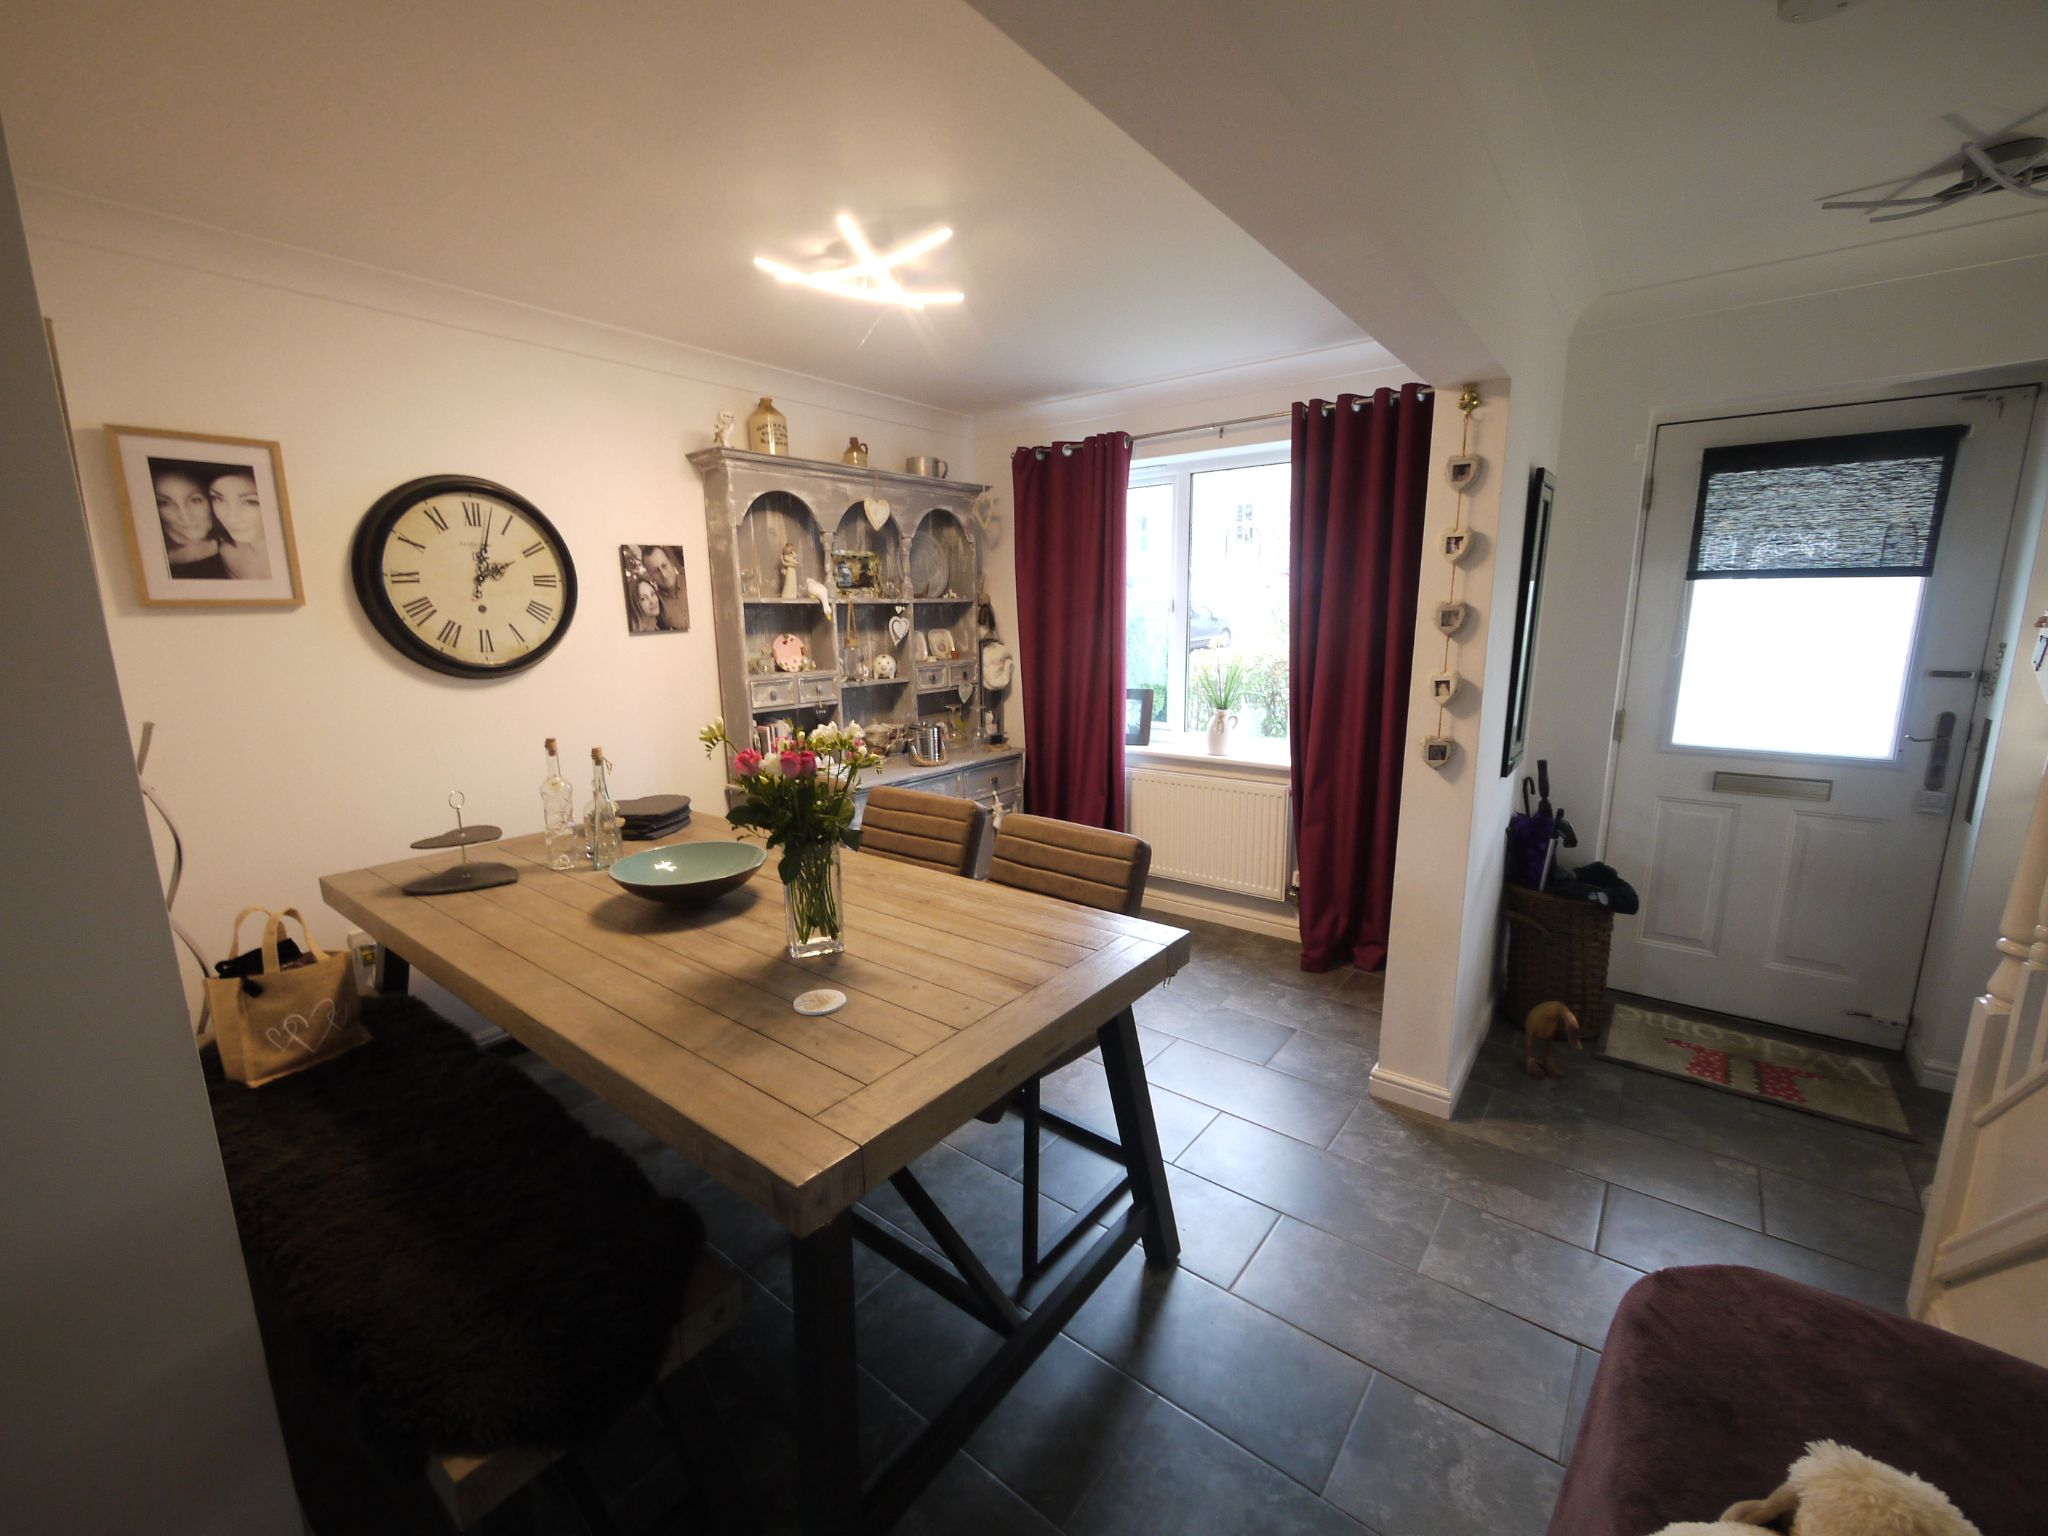 4 bedroom detached house SSTC in Brighouse - Dining Room.